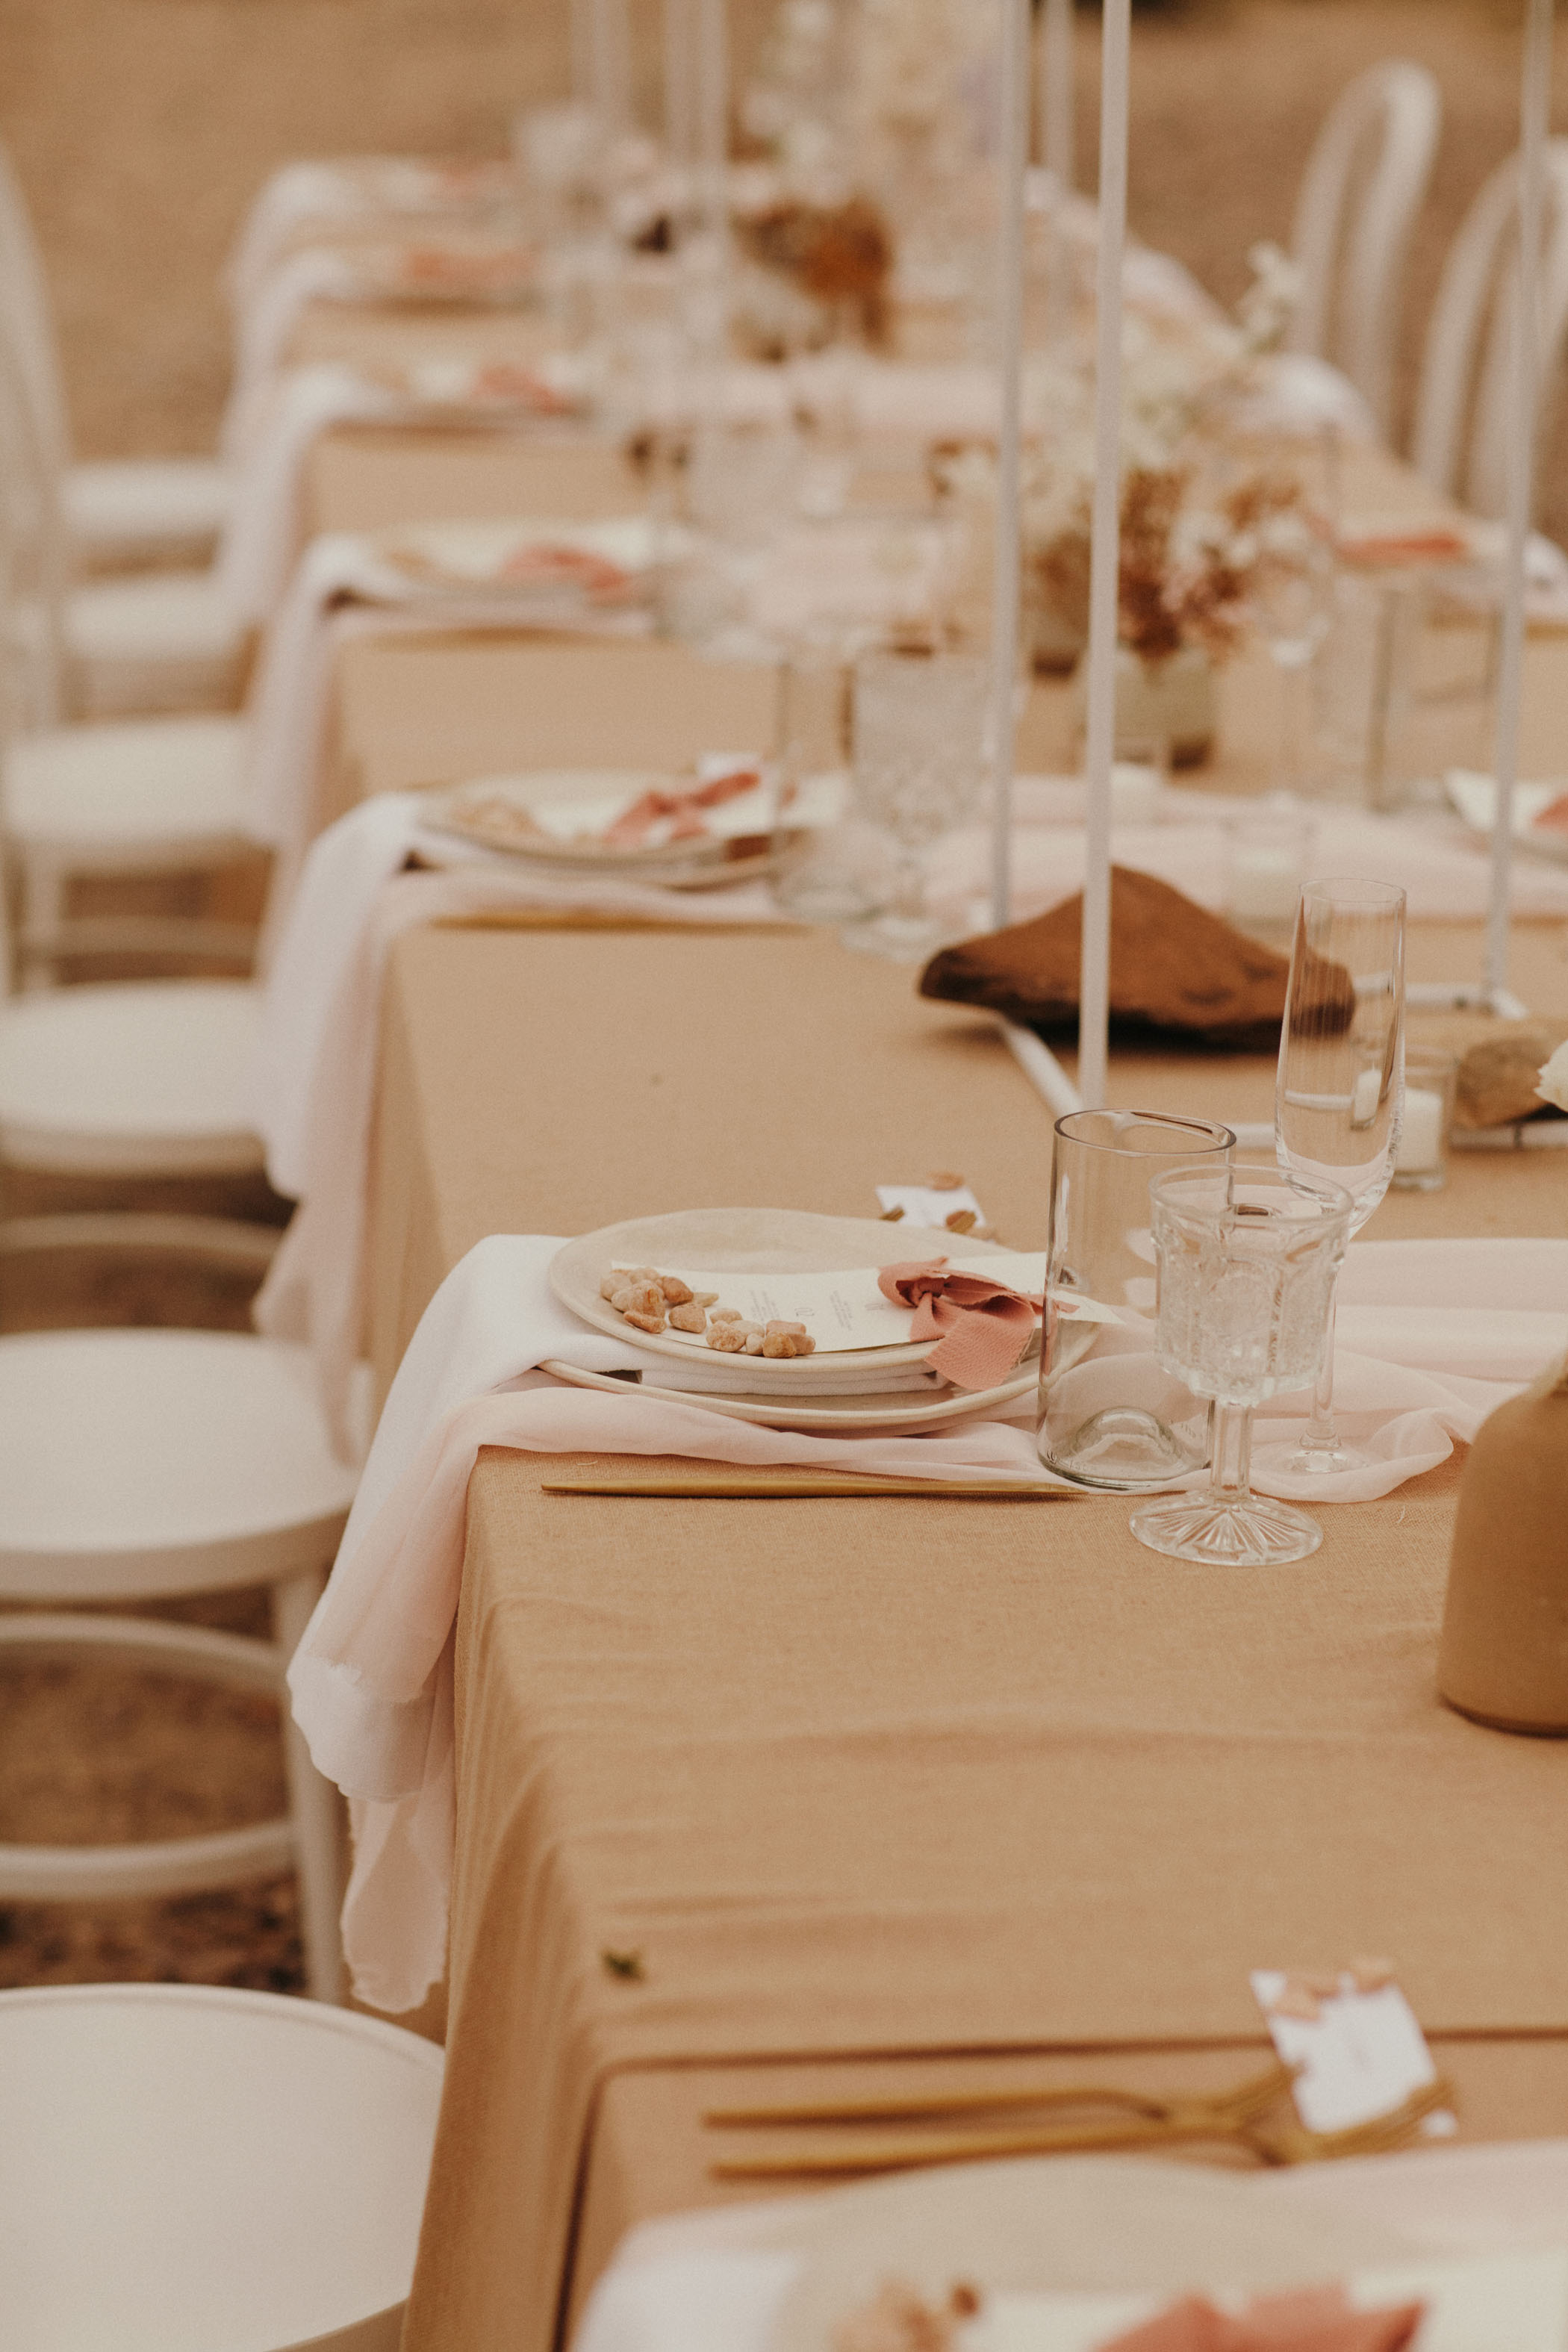 Tan and creamed toned wedding reception table